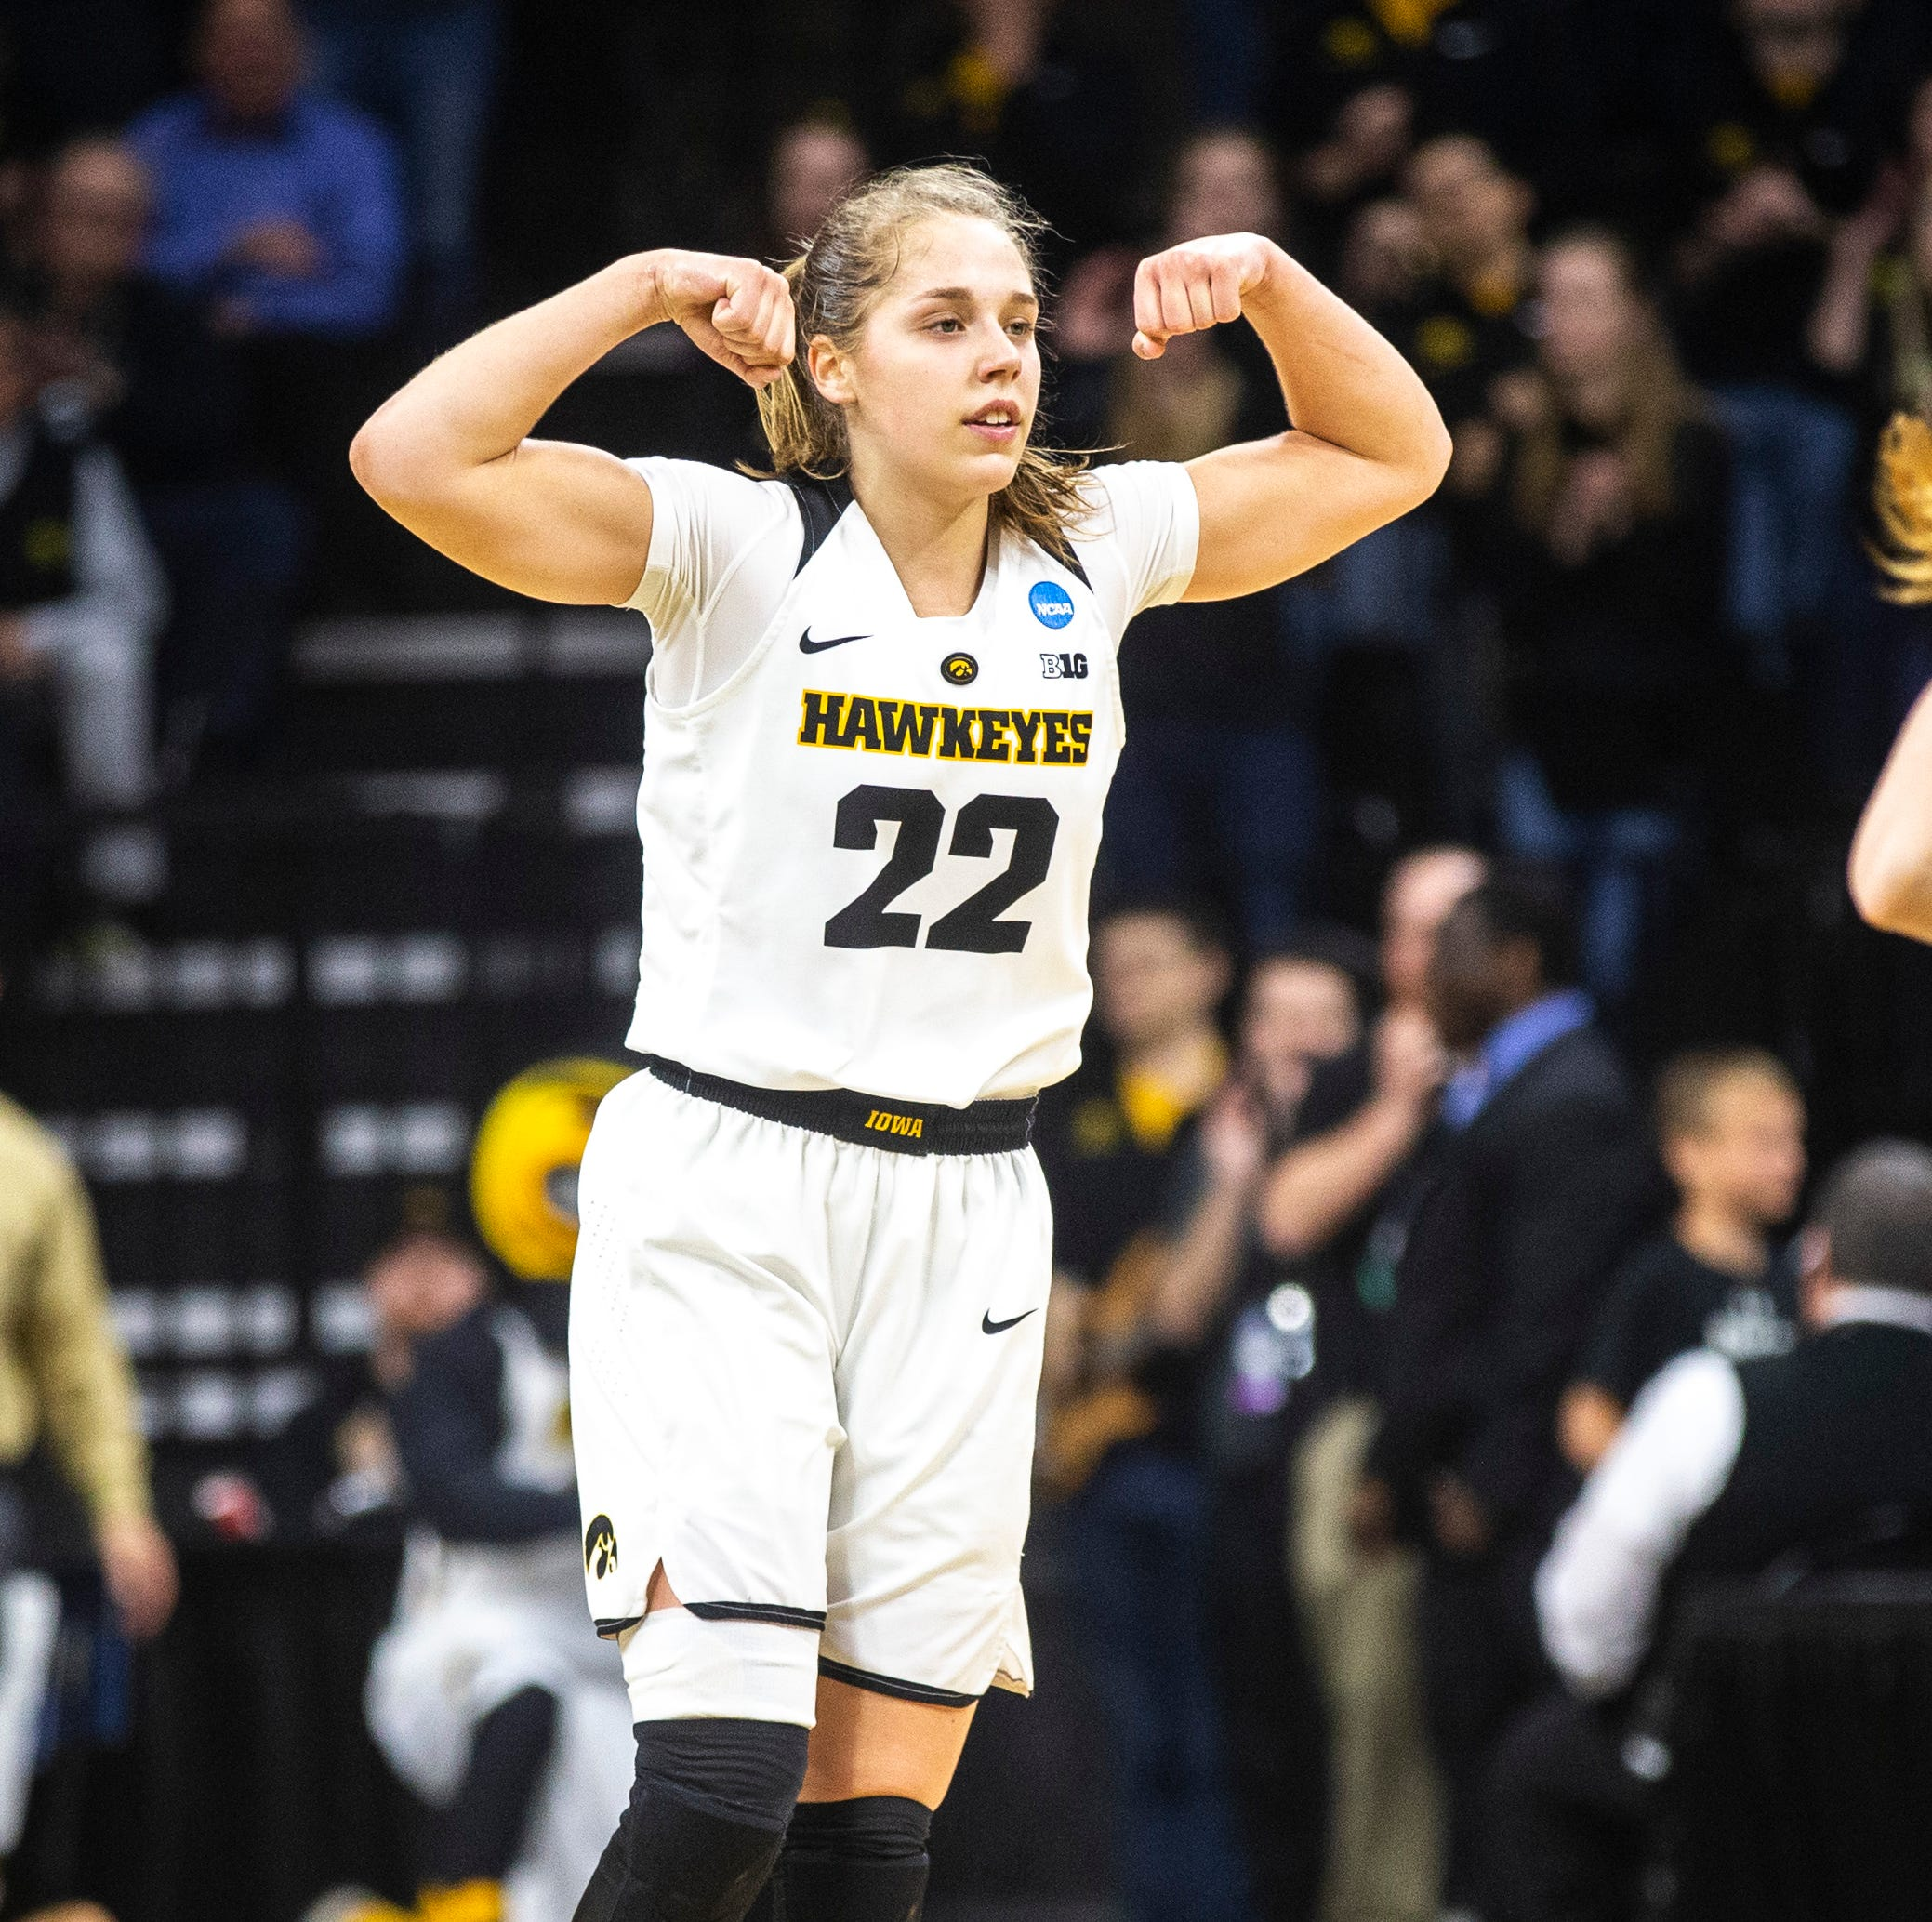 Emphatic second half pushes Hawkeyes past Missouri, into Sweet Sixteen